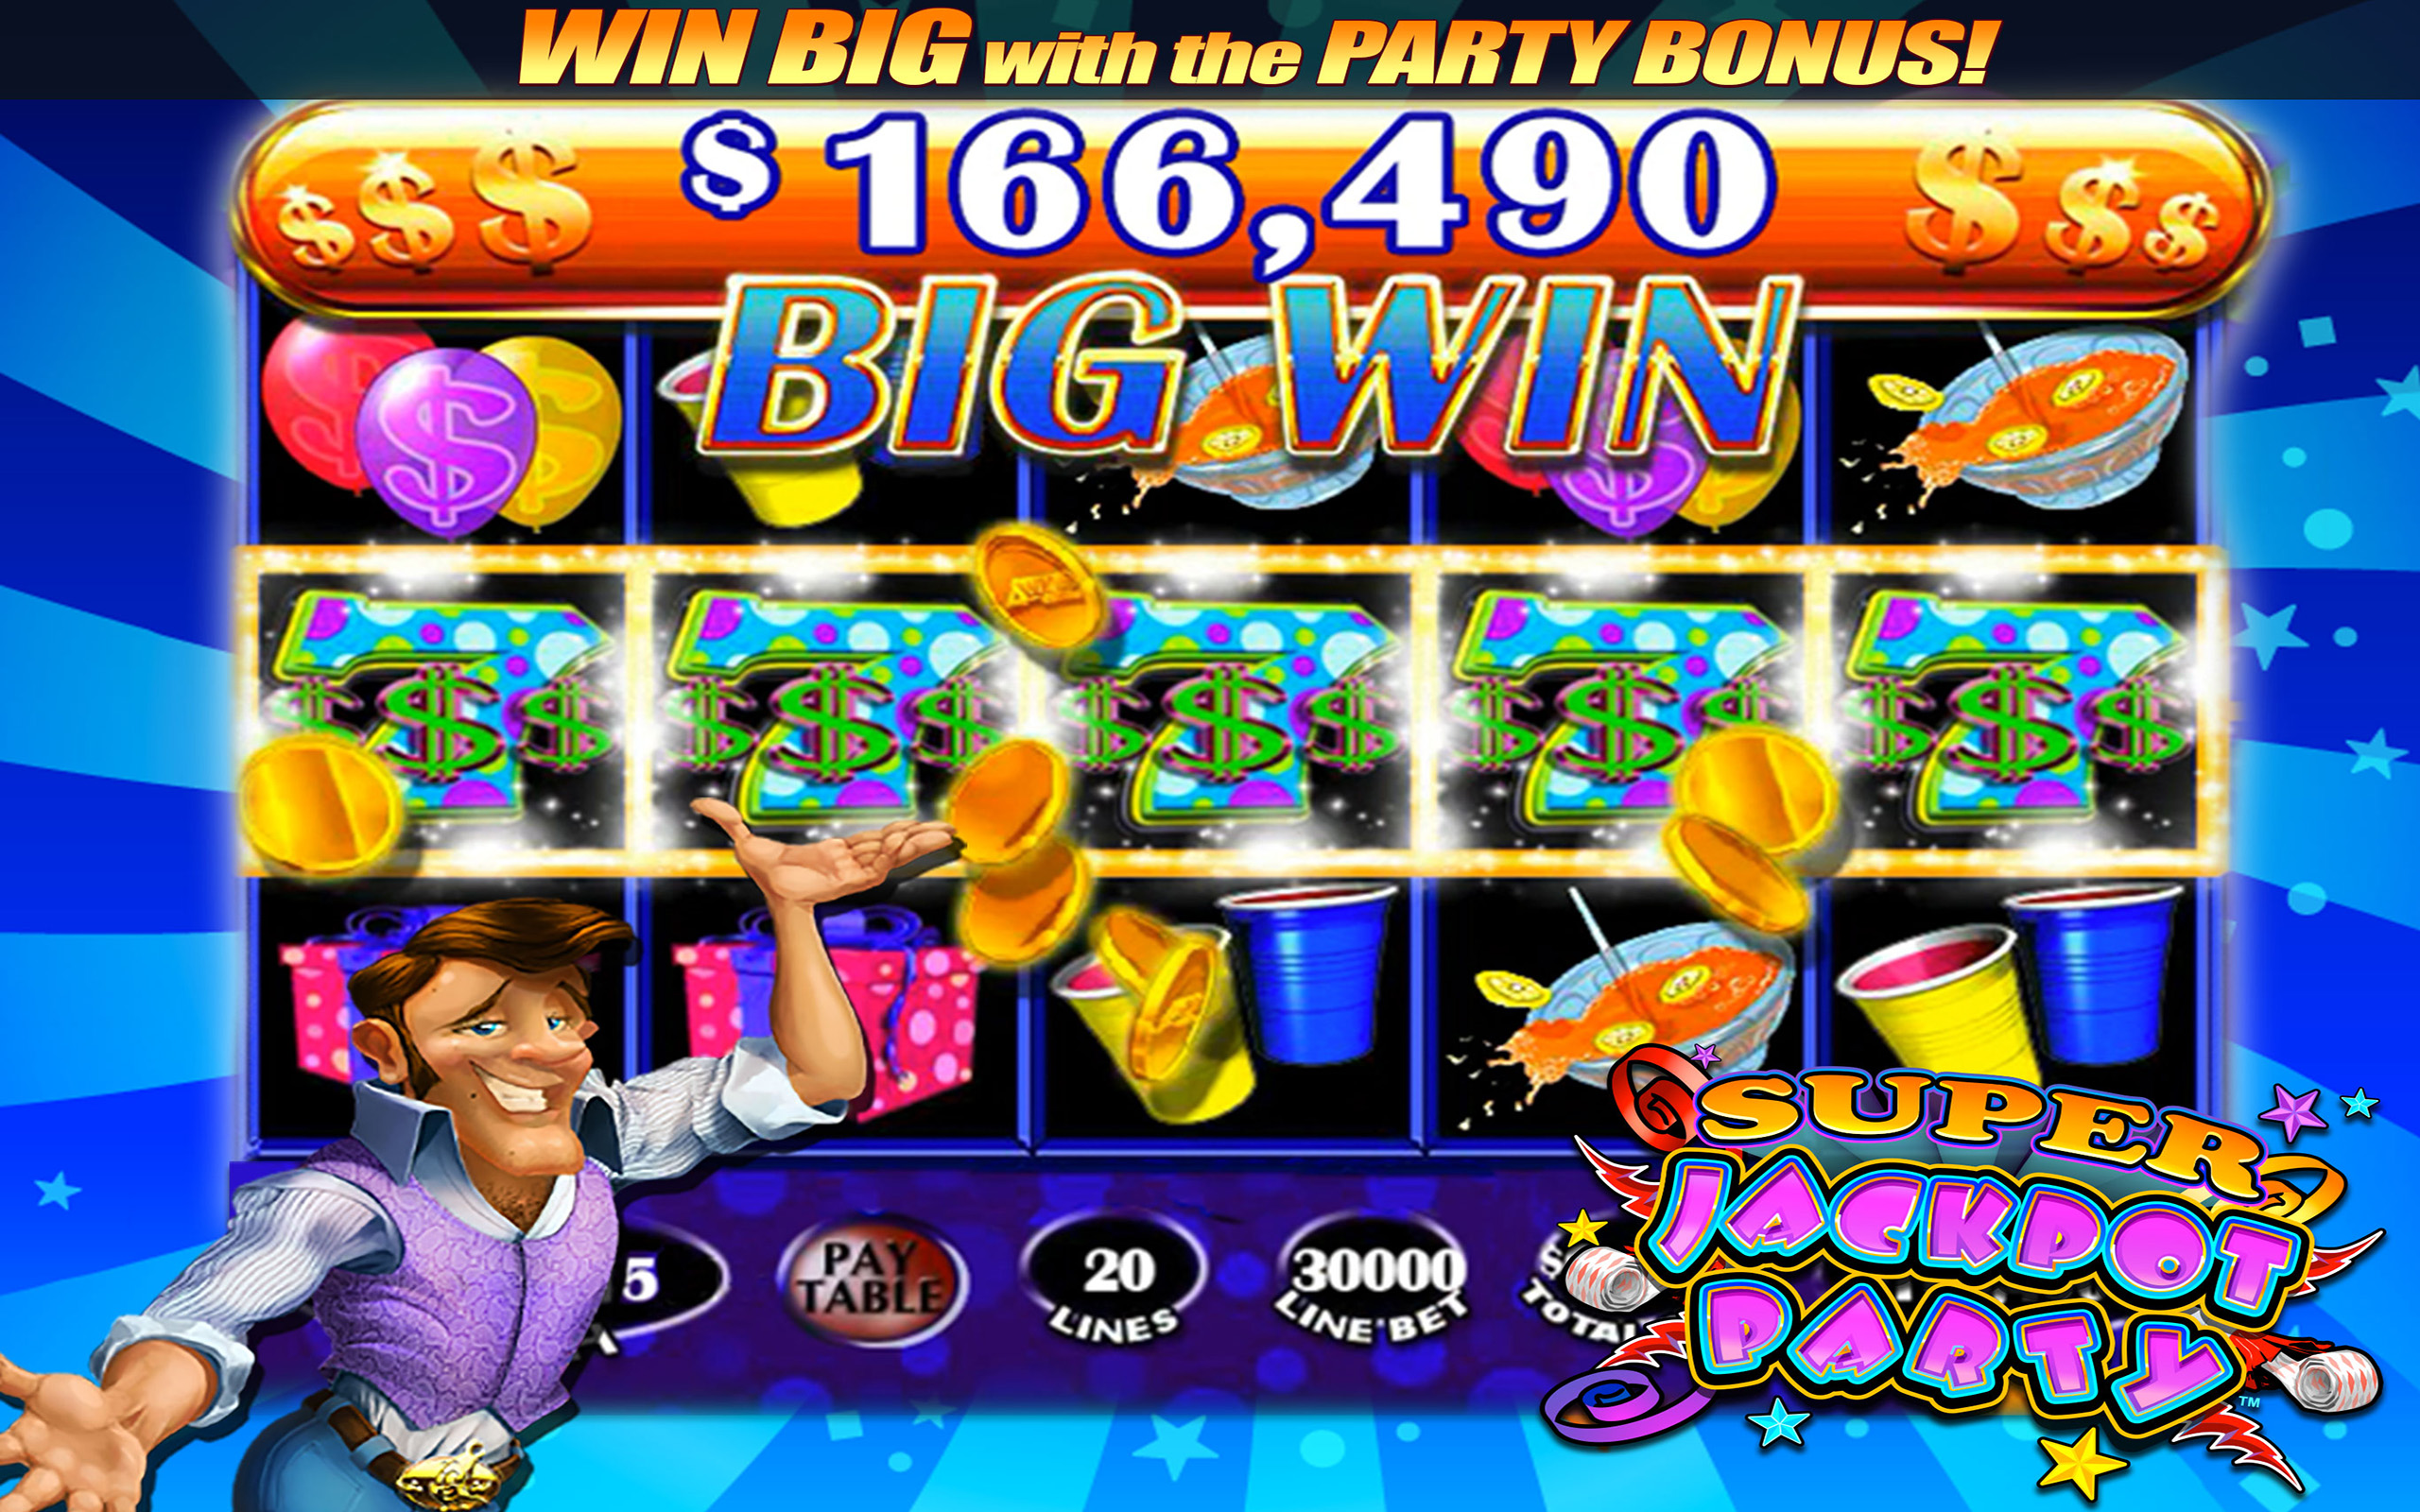 Jackpot Party Casino Slots Free Vegas Slot Games Hd